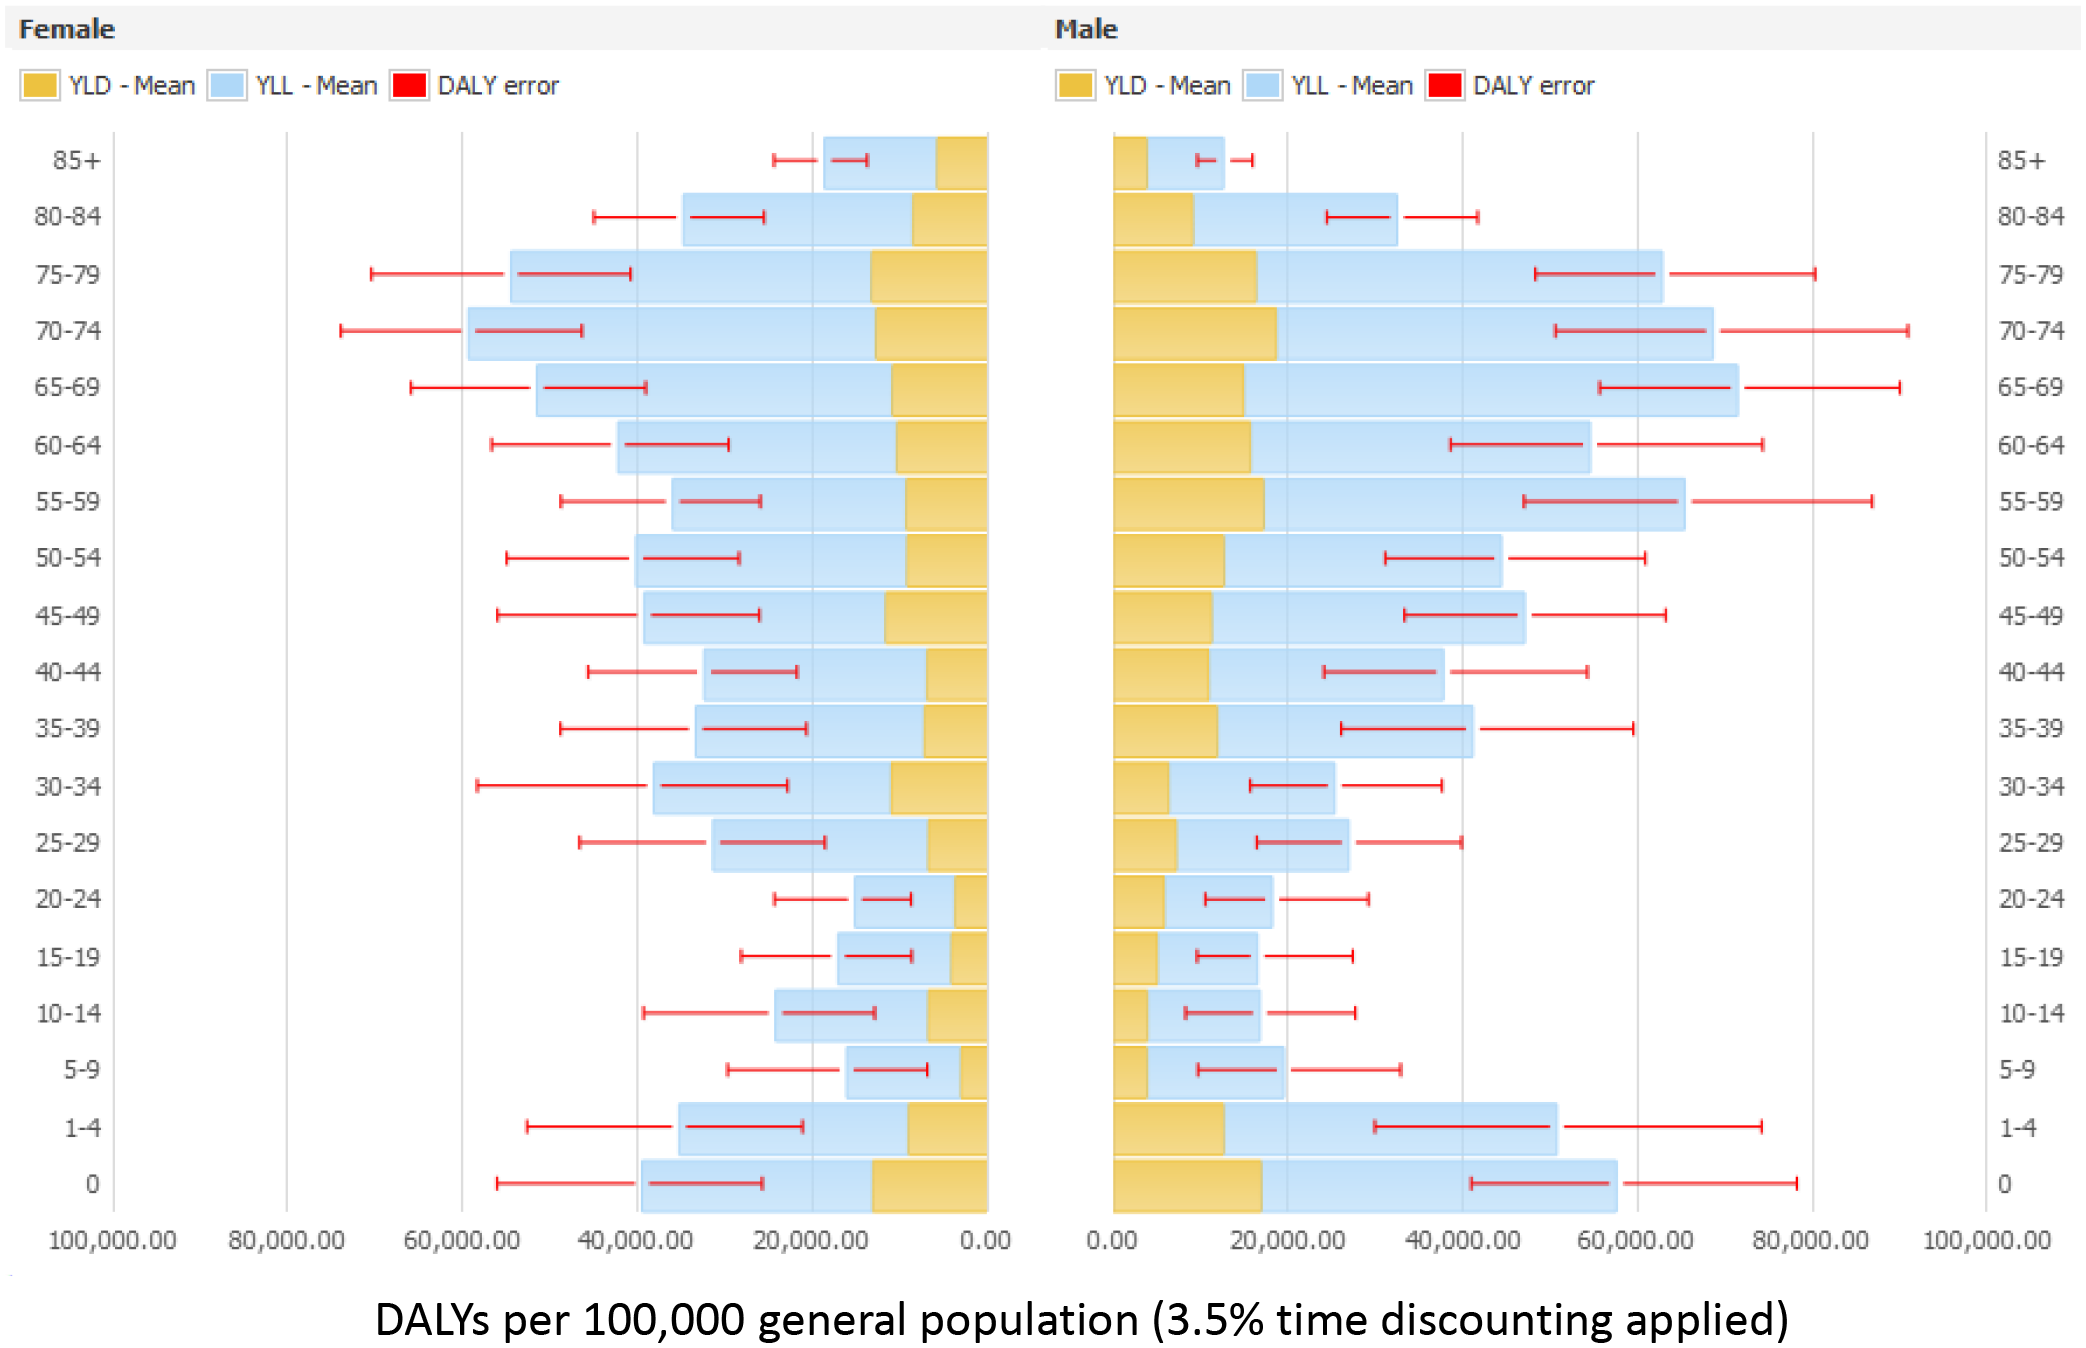 Estimated annual burden of six healthcare-associated infections in DALYs per 100,000 general population (median and 95% uncertainty interval) by gender and age group, split between YLLs and YLDs, EU/EEA, 2011–2012 (3.5% annual time discounting applied).